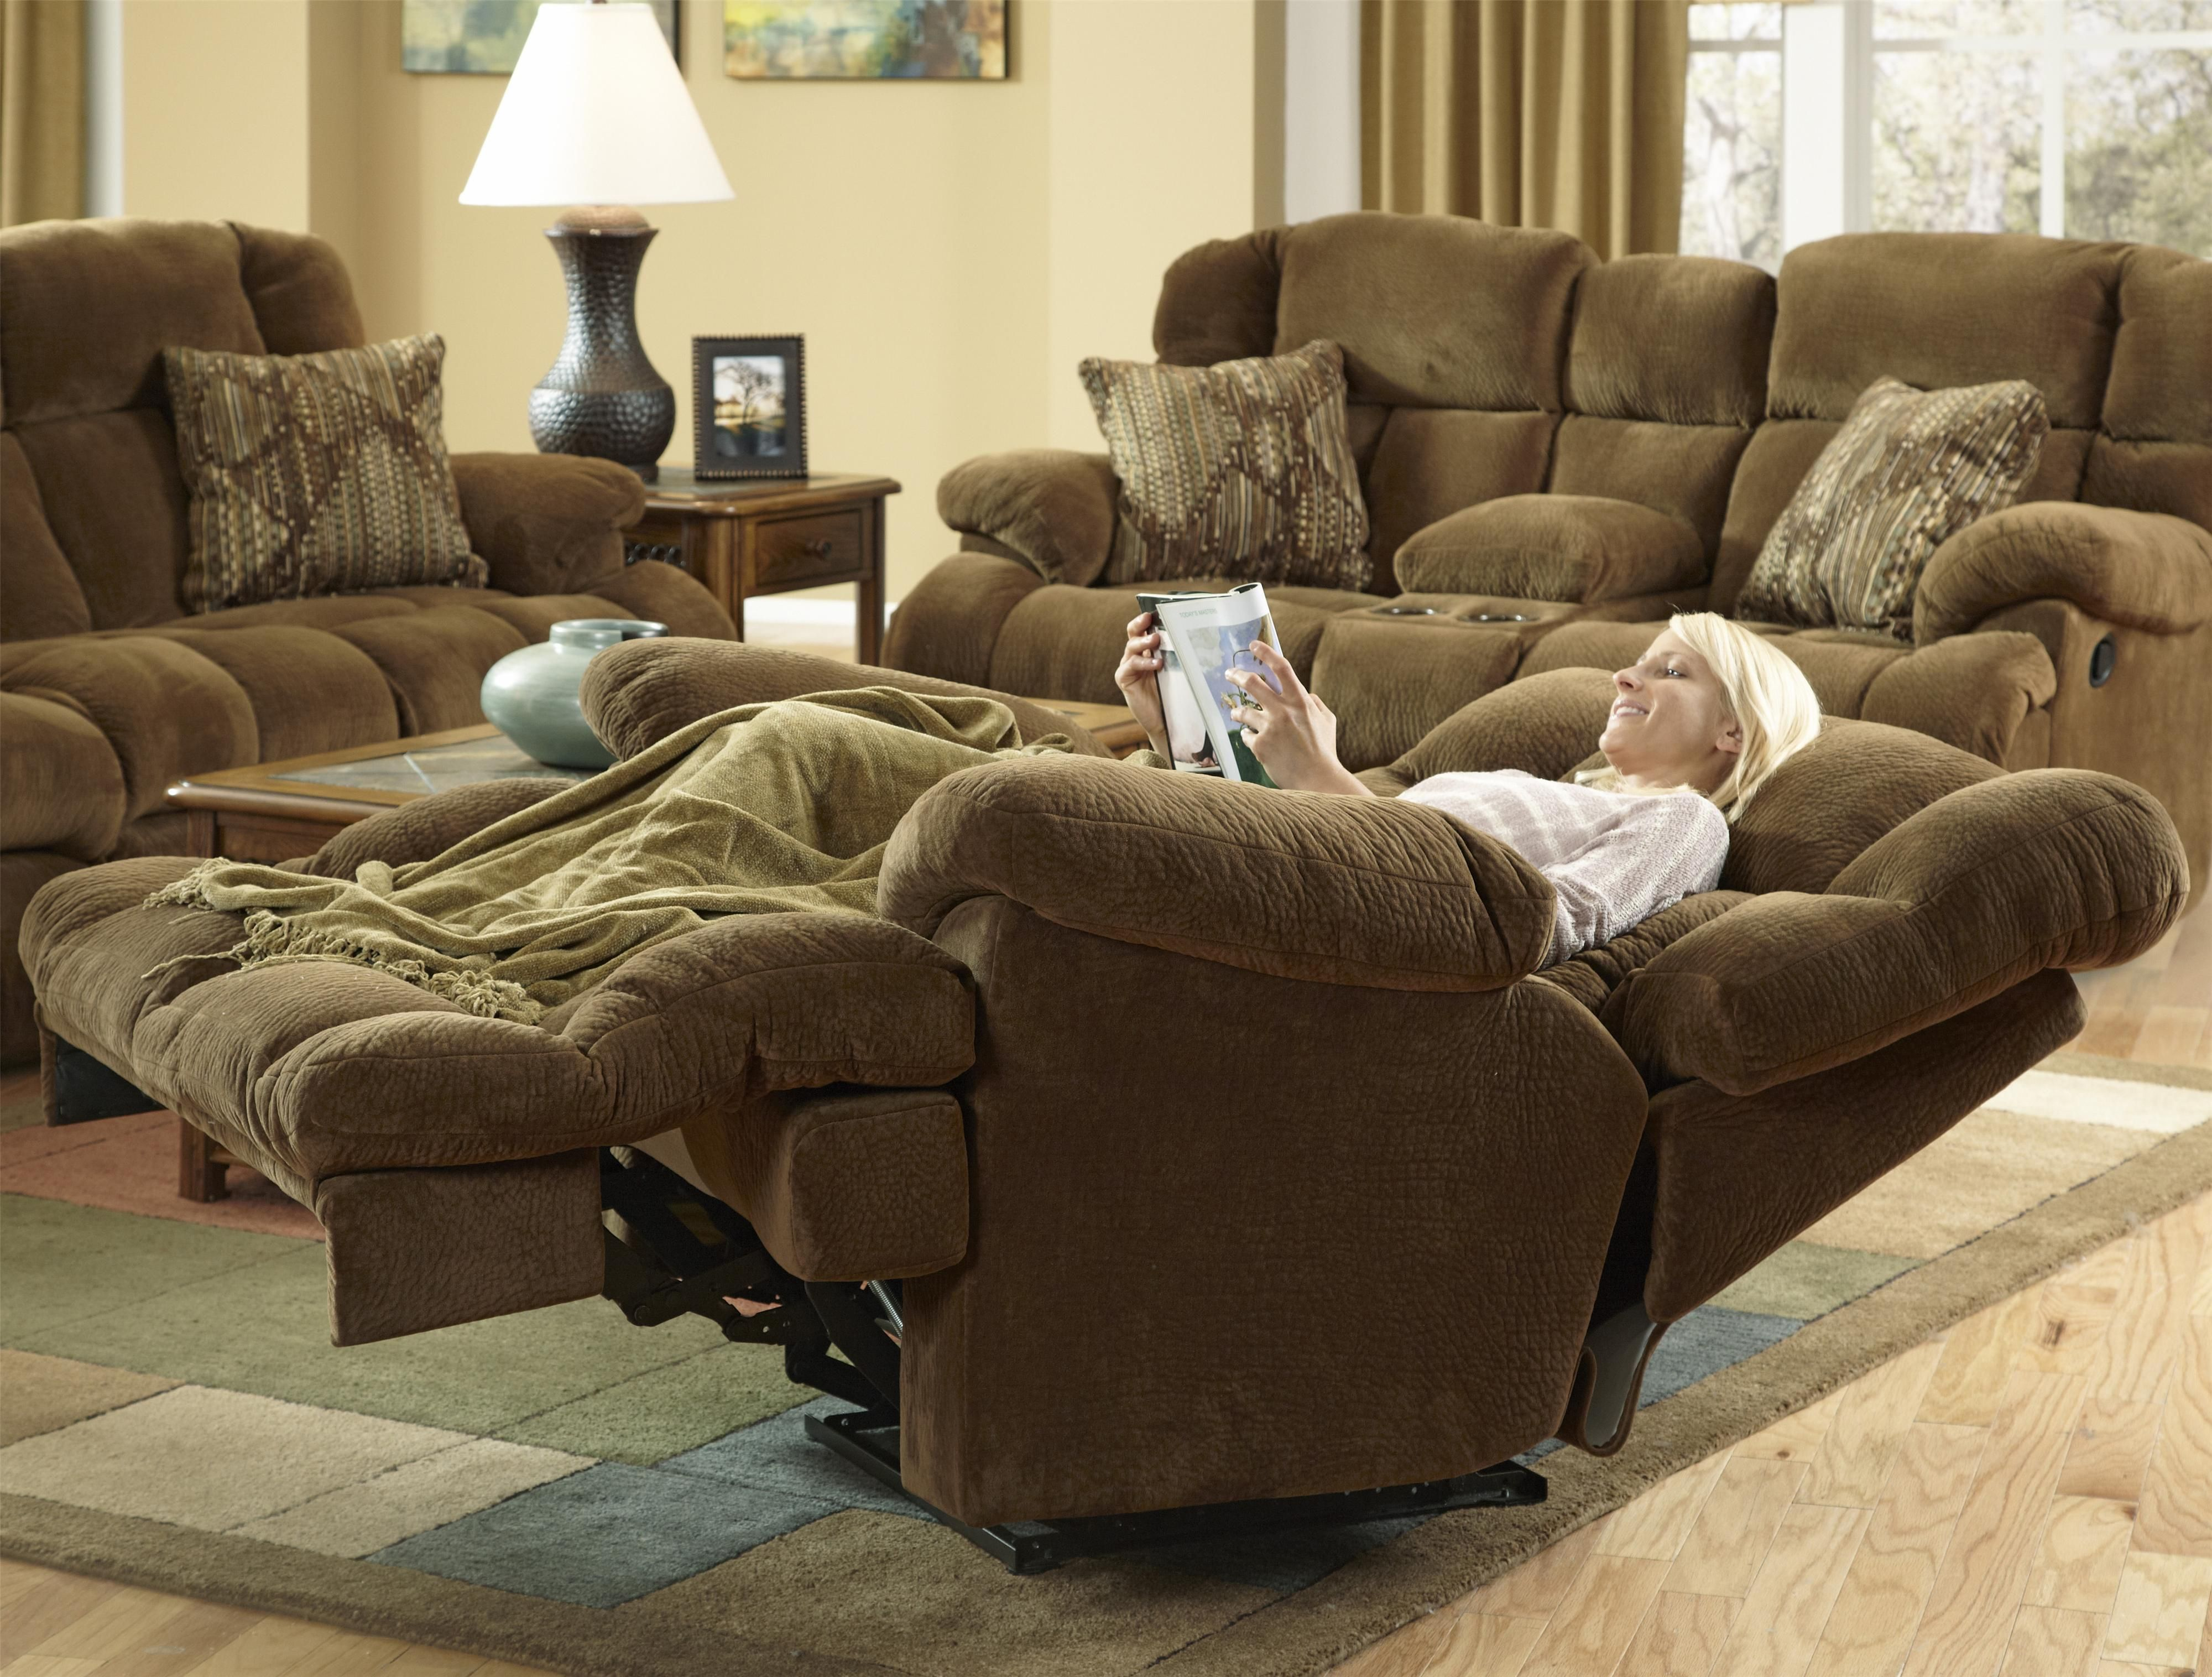 storage flat catnapper reclining carrington greystone loveseat yhst lay cupholders w console